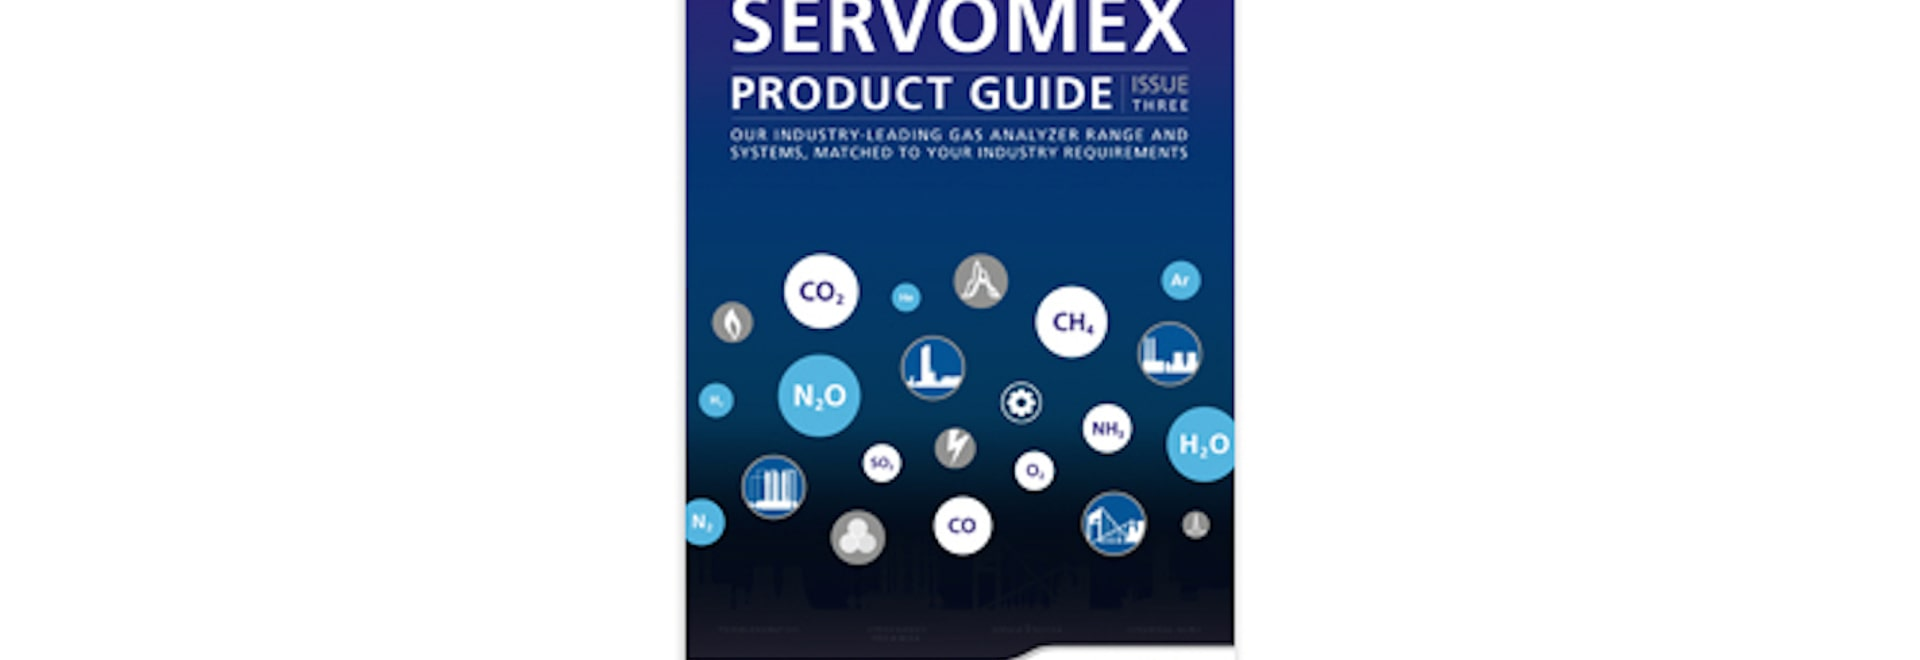 DOWNLOAD OUR NEW PRODUCT GUIDE TODAY